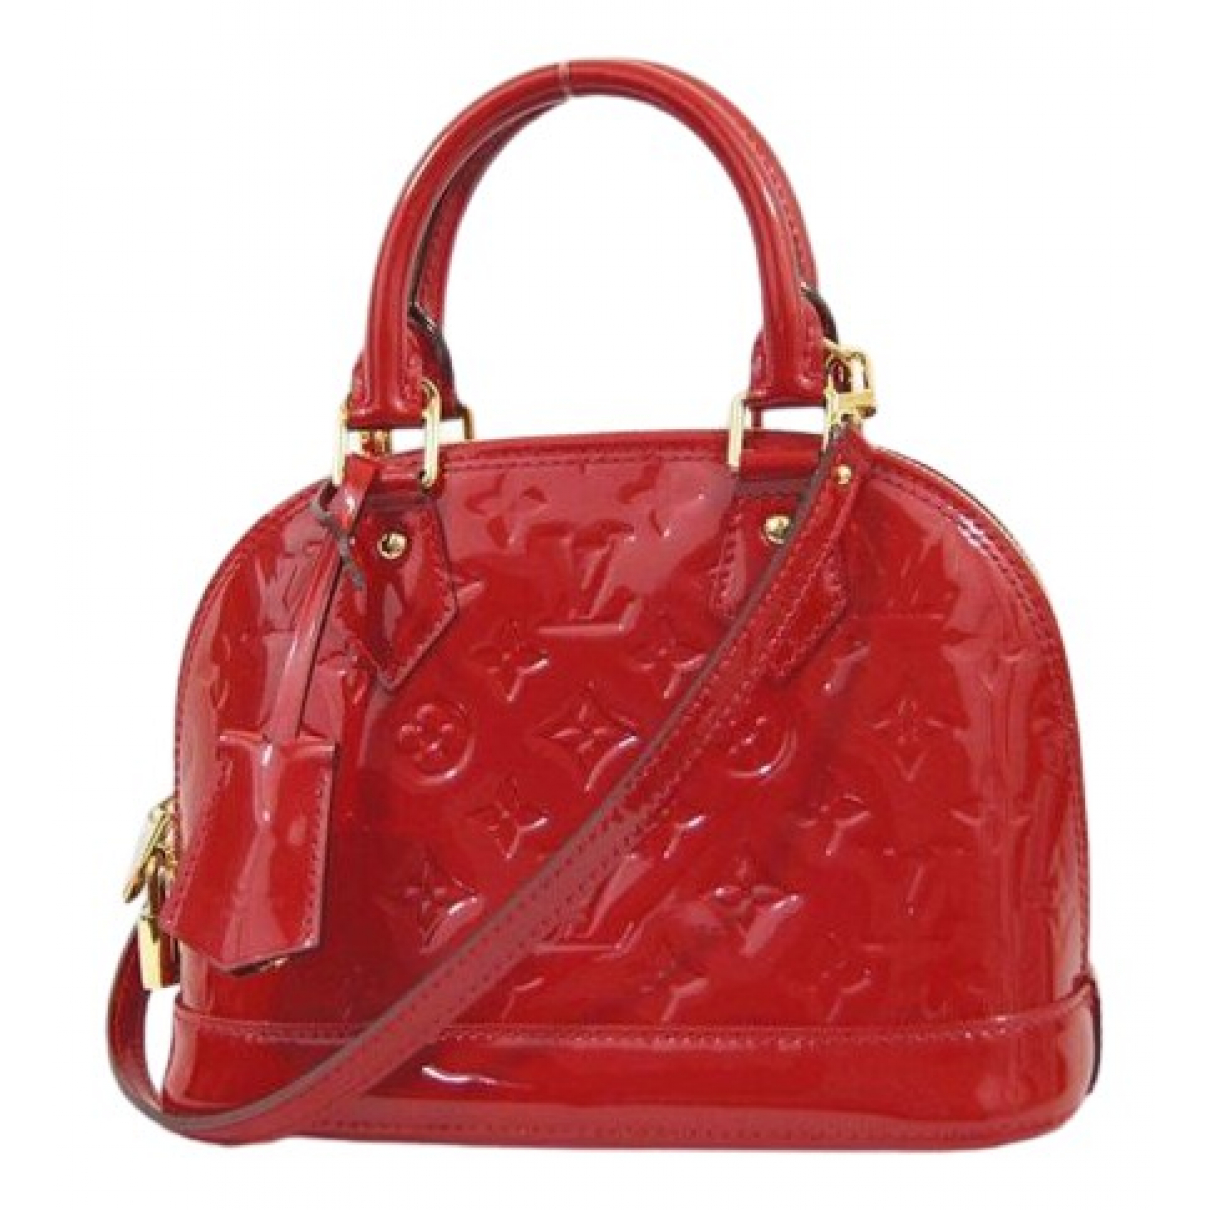 Louis Vuitton Alma BB Red Patent leather handbag for Women \N